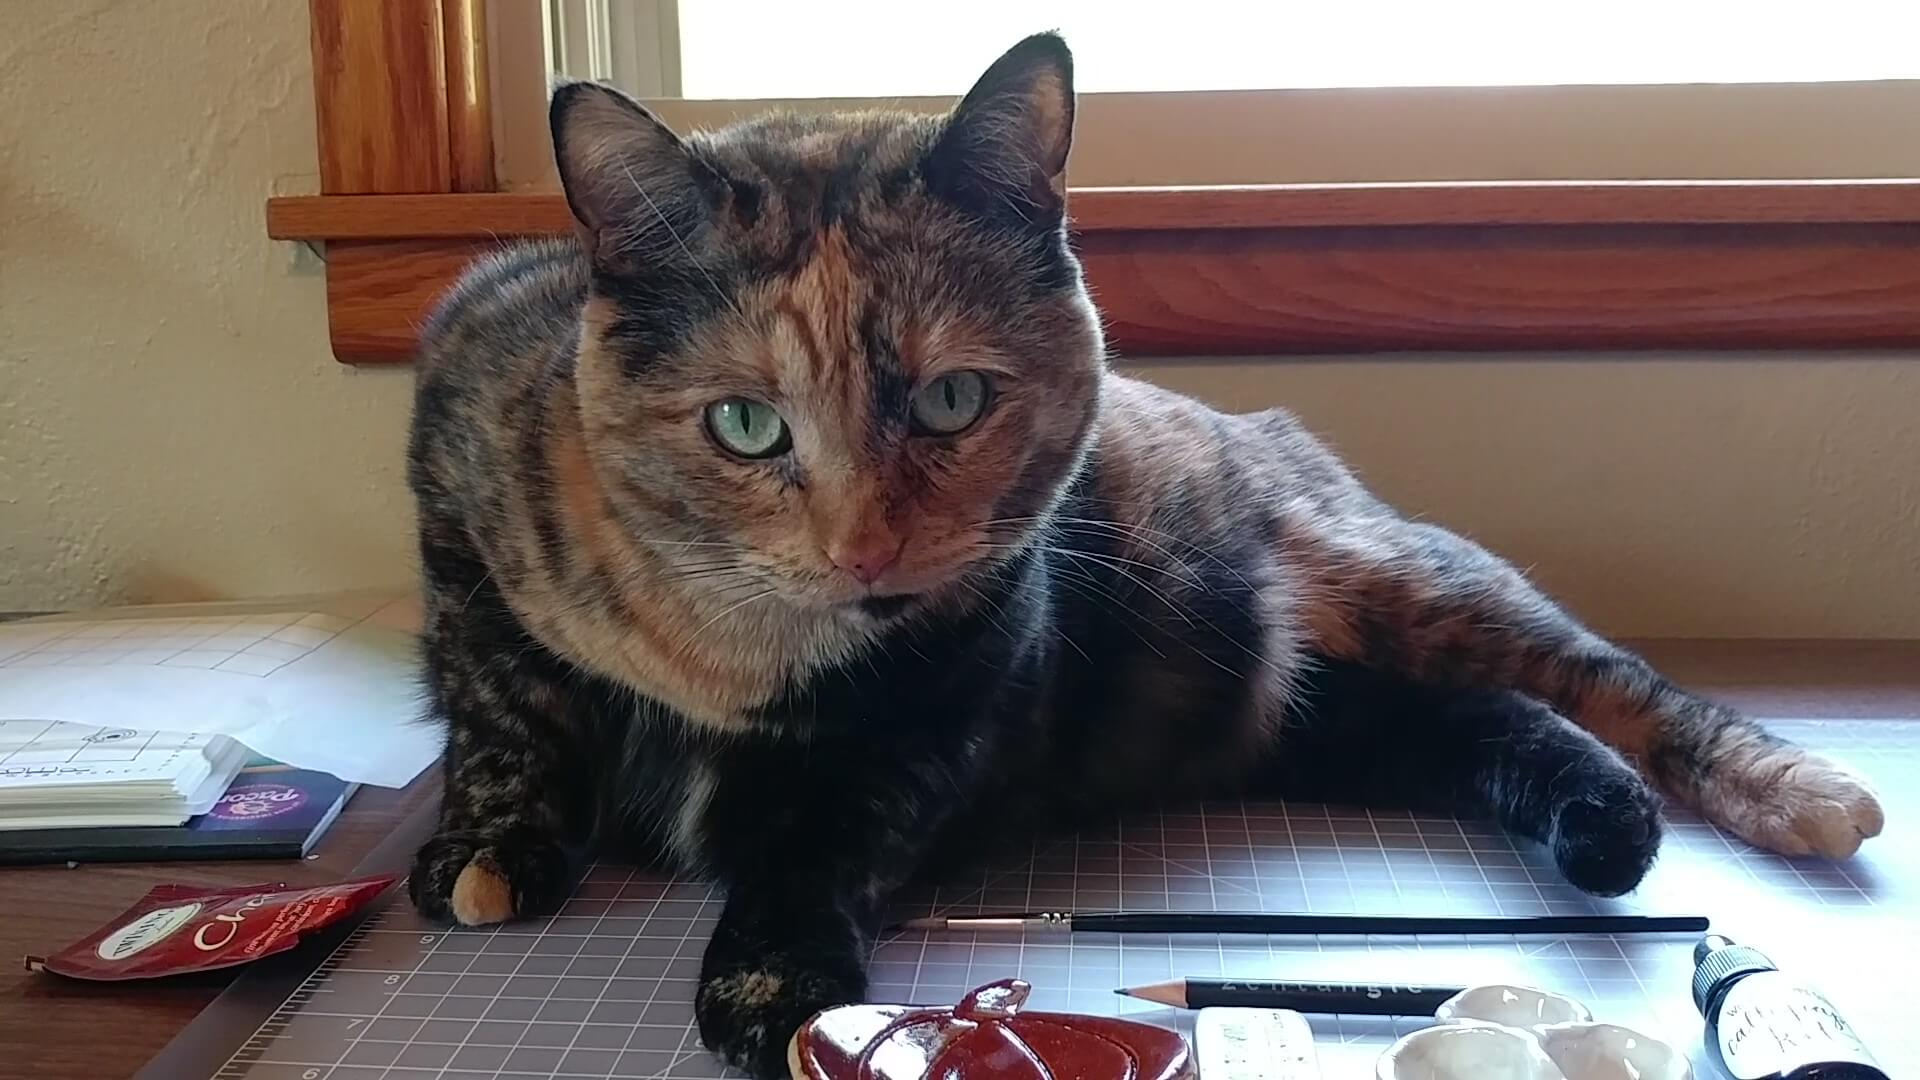 Izzy the tortie cat sitting on my desk asking what's up with you?